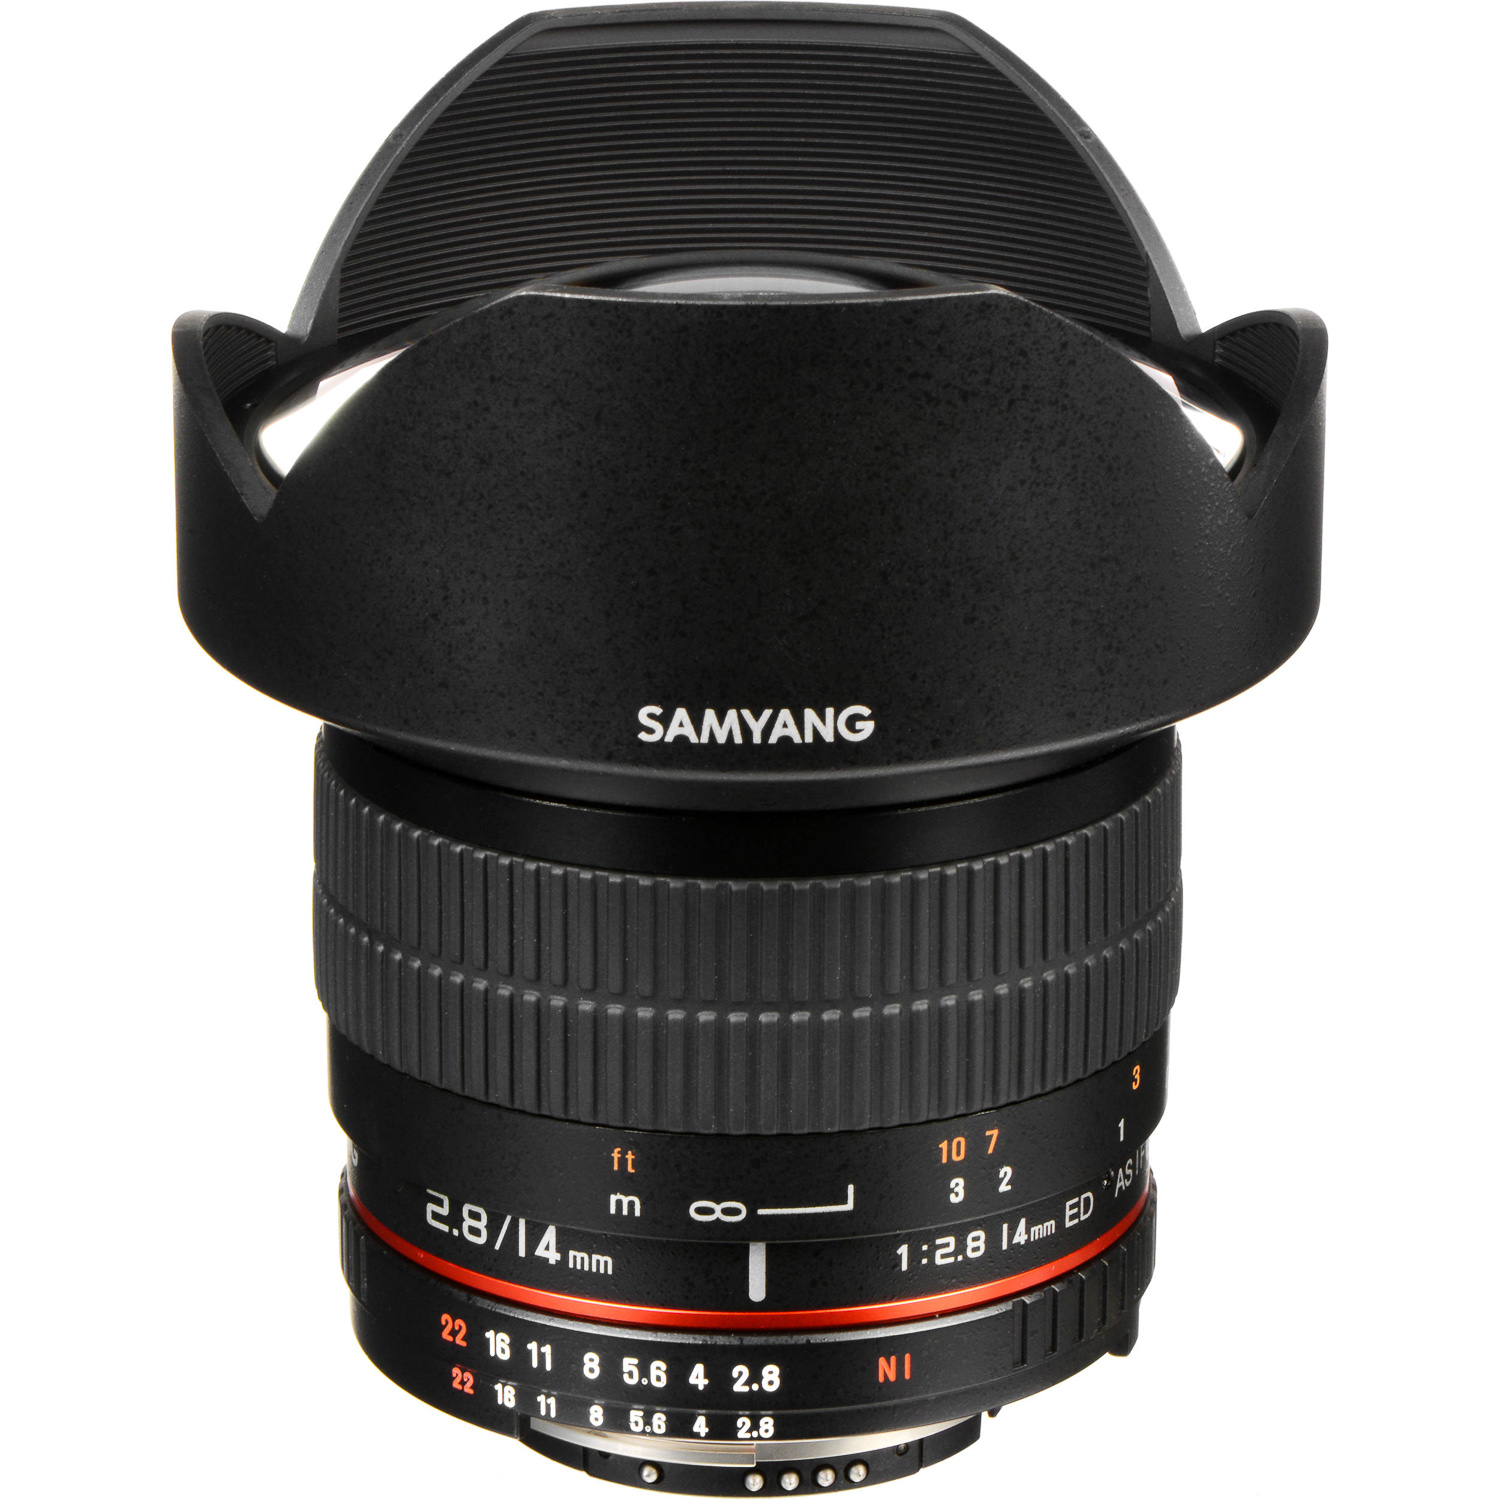 Samyang 14mm f/2 8 Lens - Astrophotography On A Budget